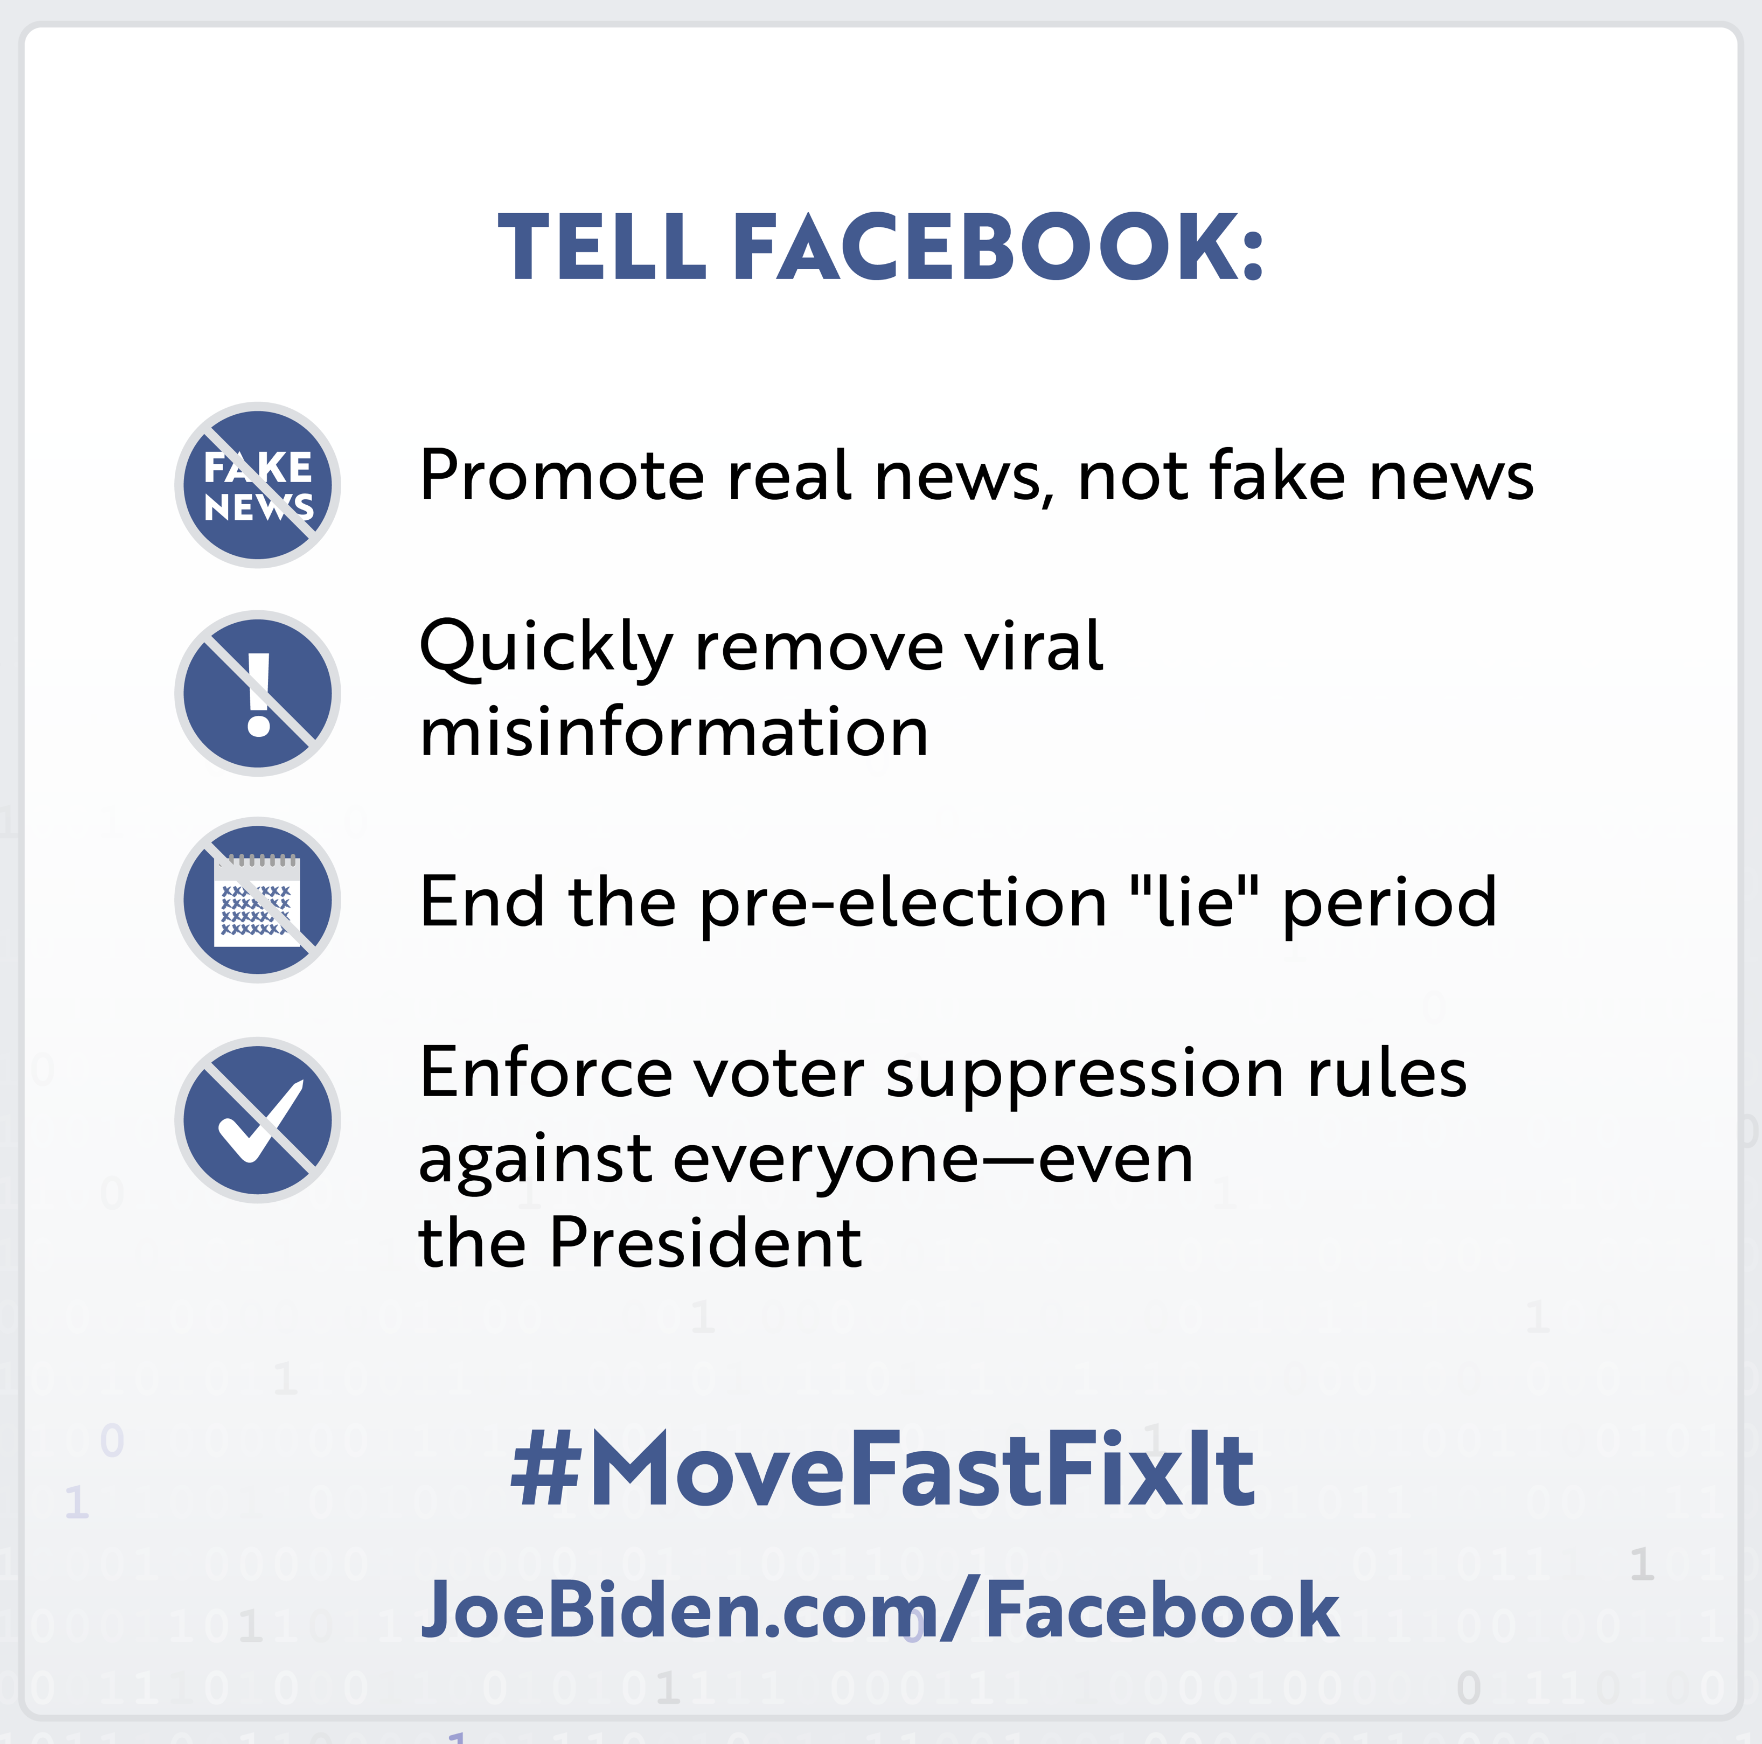 Movefastfixit Joe Biden For President Official Campaign Website